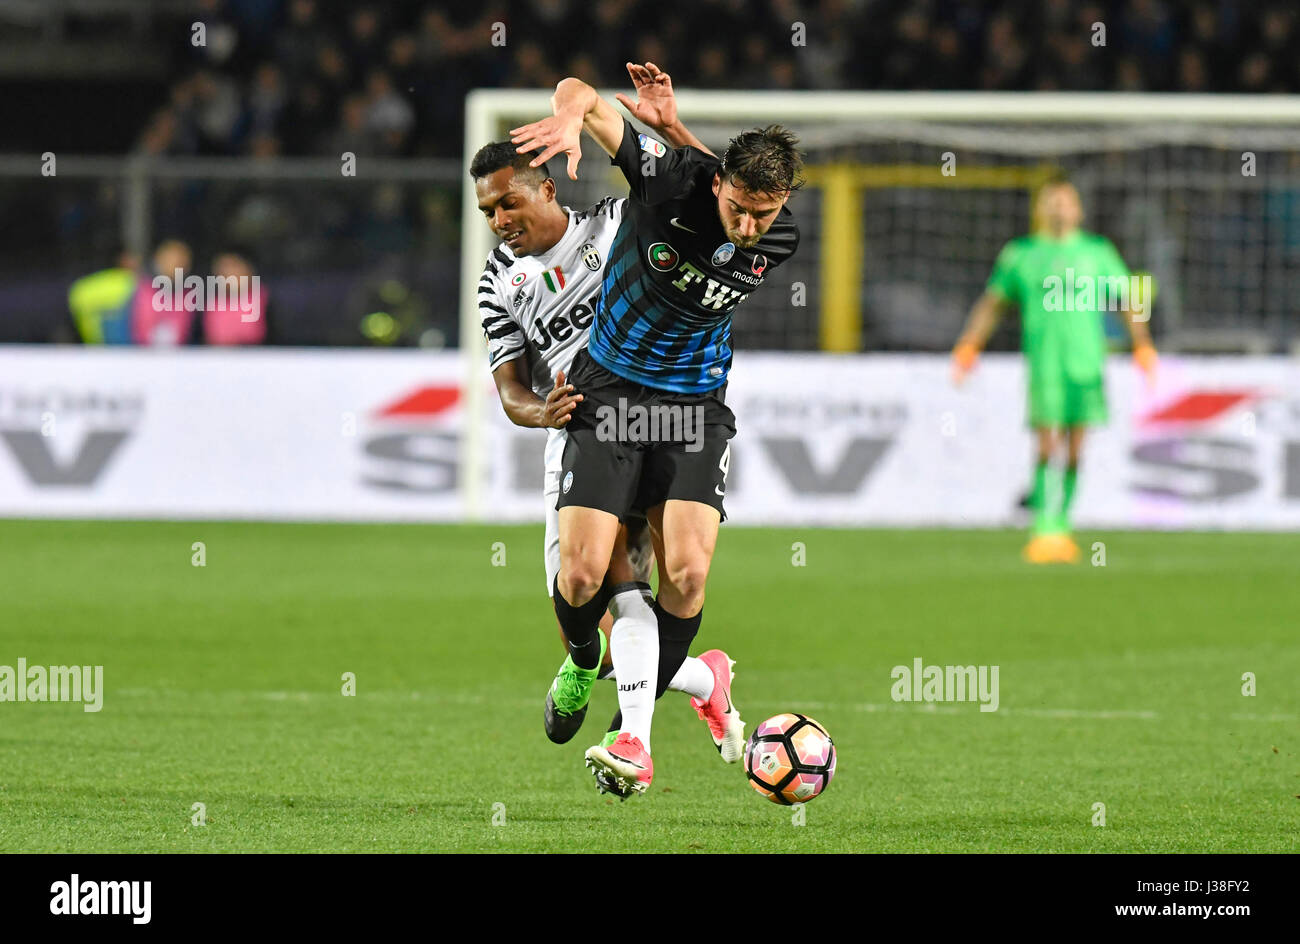 Soccer players in action, FC Juventus Alex Sandro and Atalanta Bryan Cristante during the italian soccer match, - Stock Image